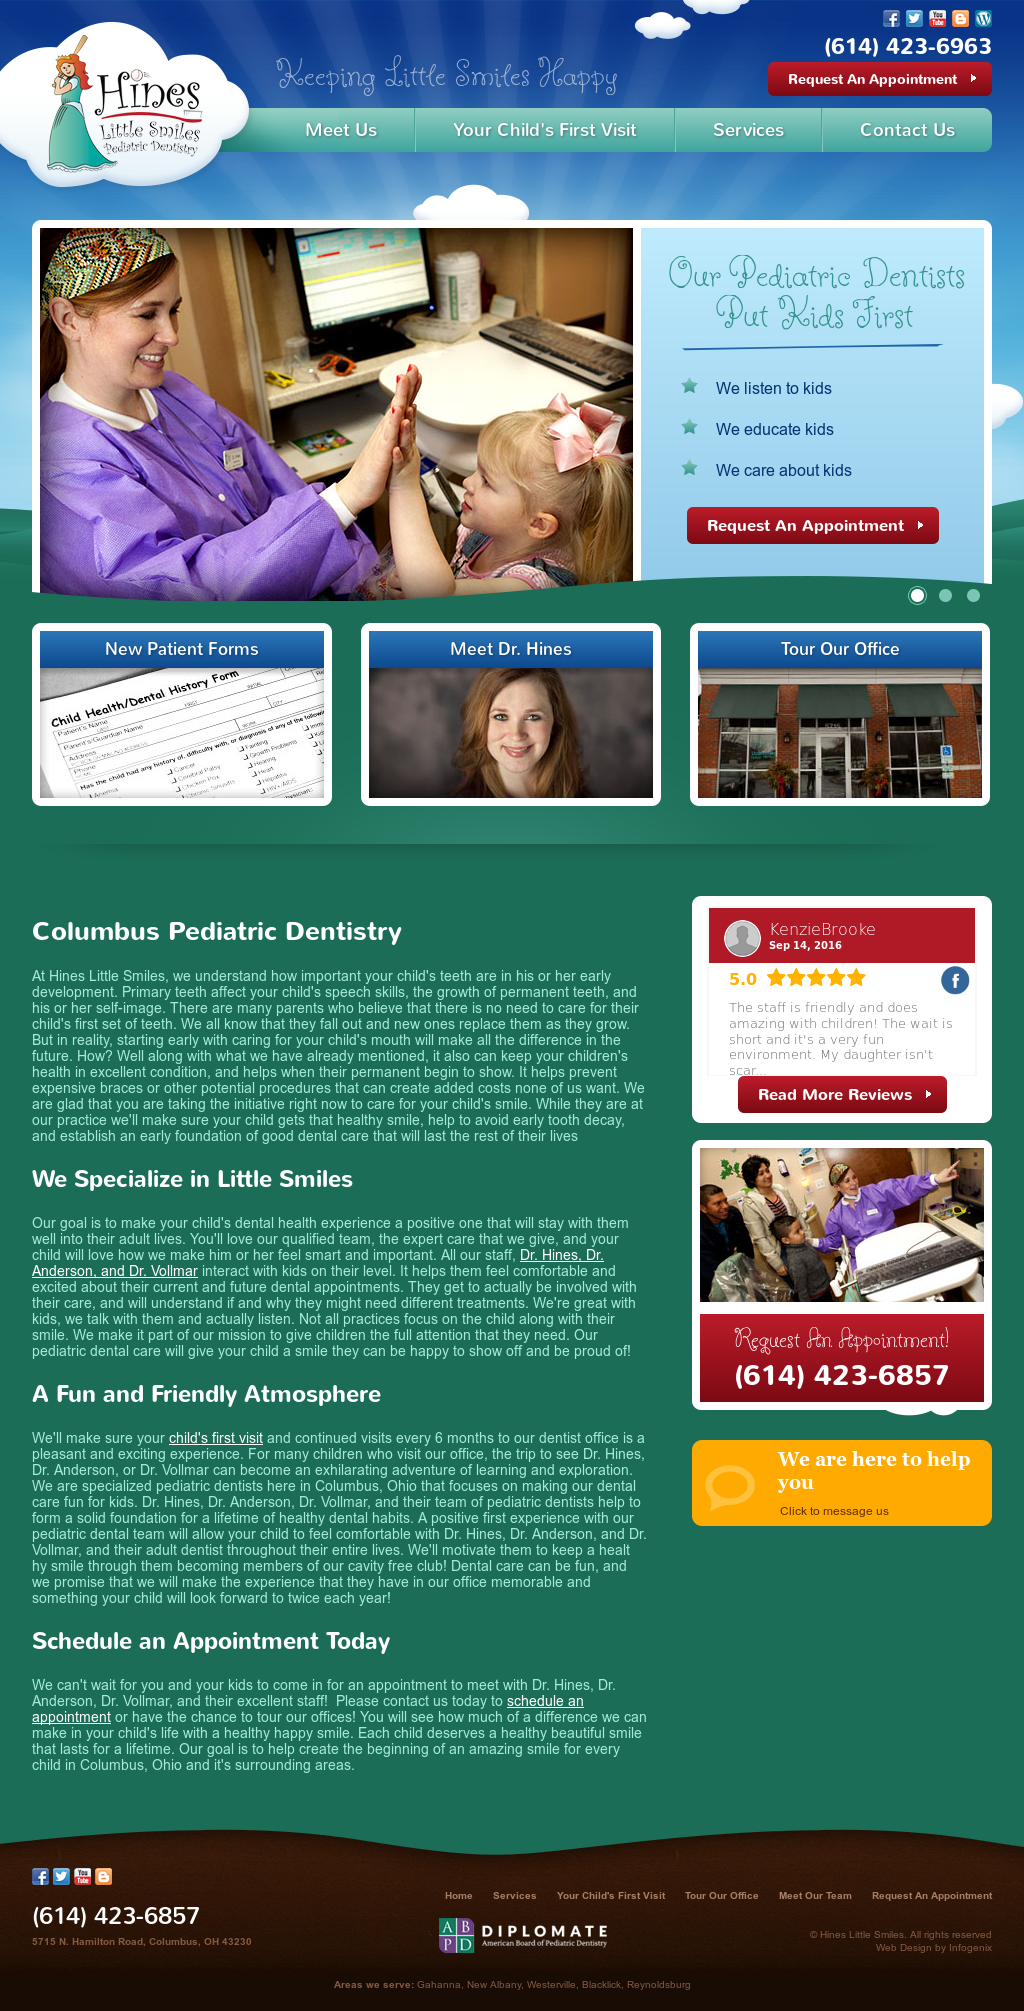 Hines Little Smiles Pediatric Dentistry Competitors, Revenue and